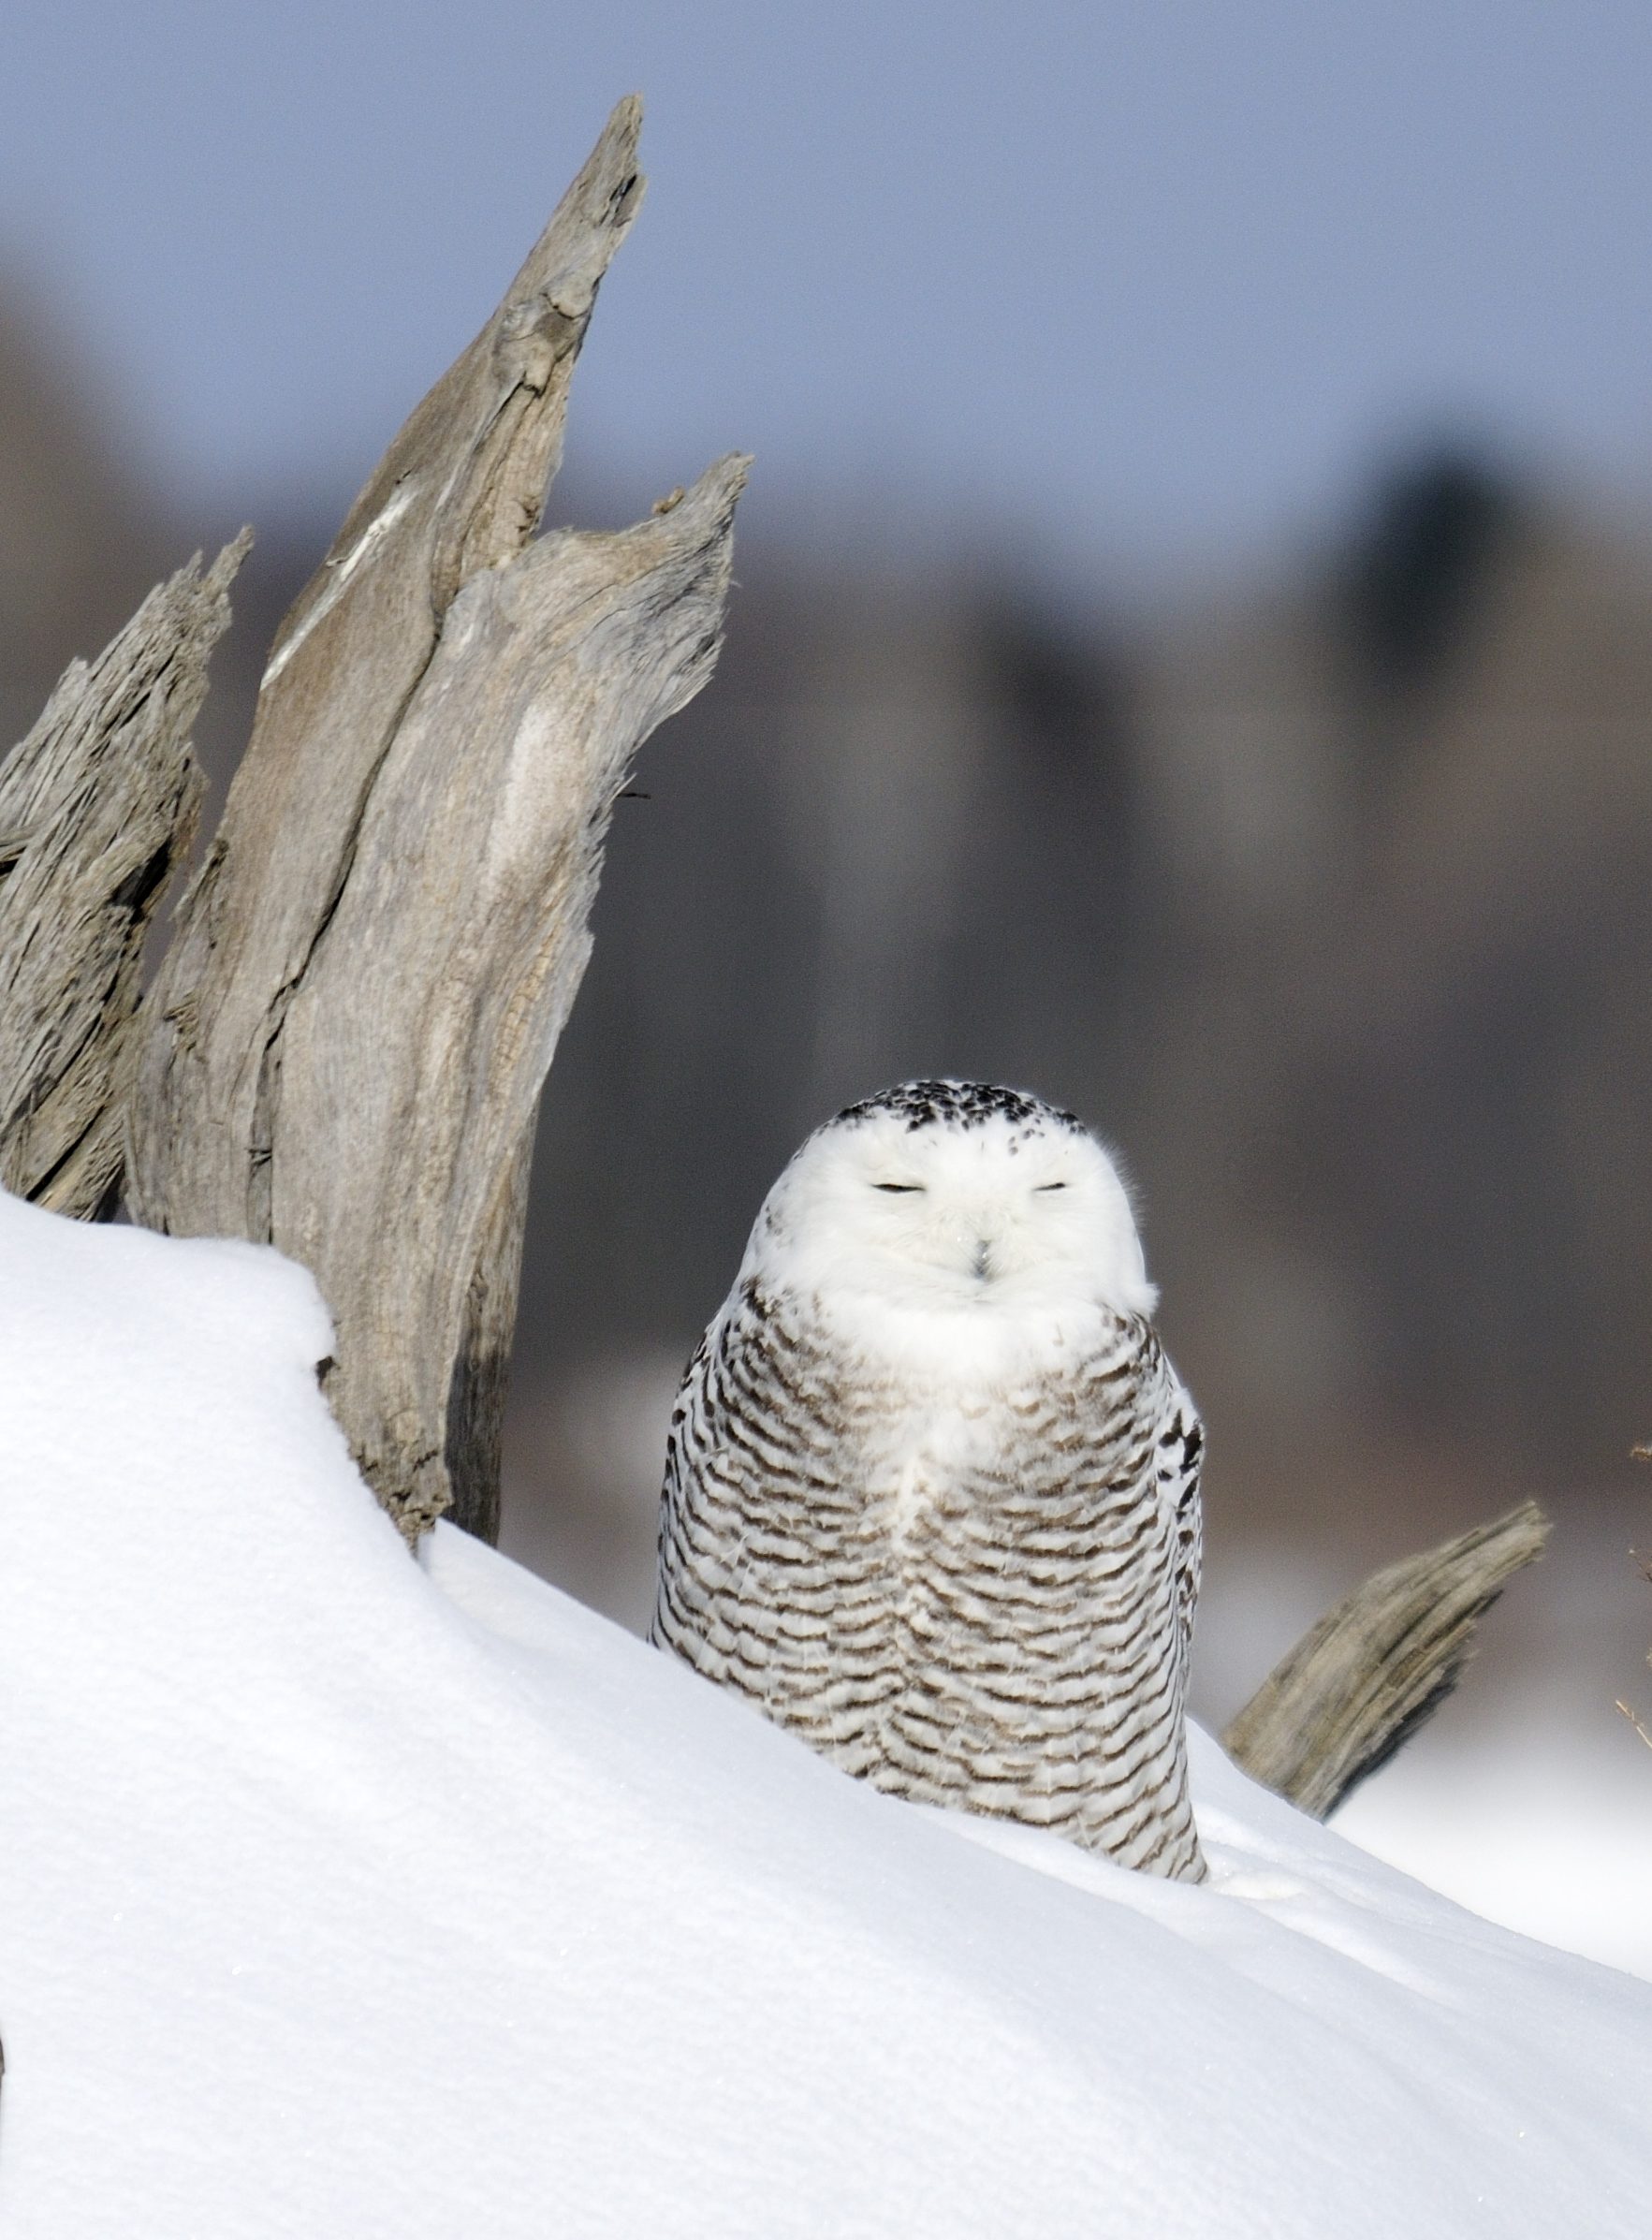 Snowy owls...Harfang des neiges... by RichardRobert